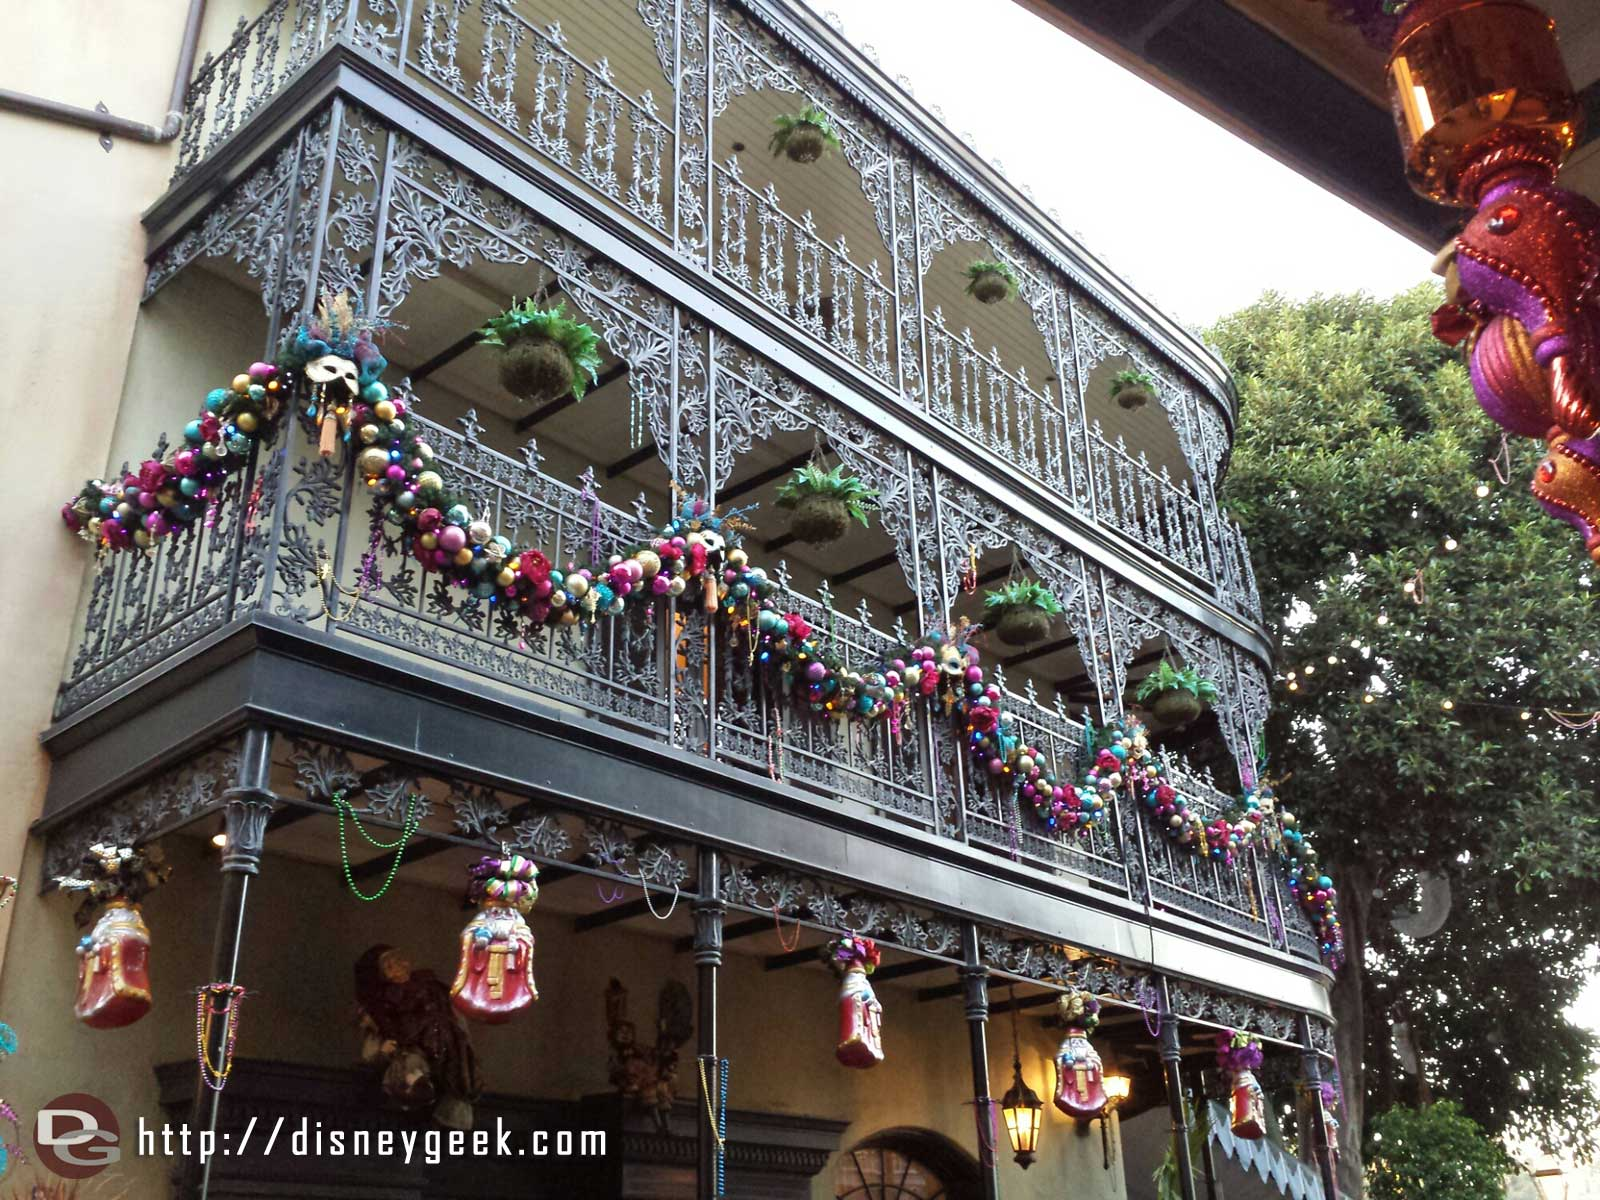 New Orleans Square is decorated for Christmas #Disneyland